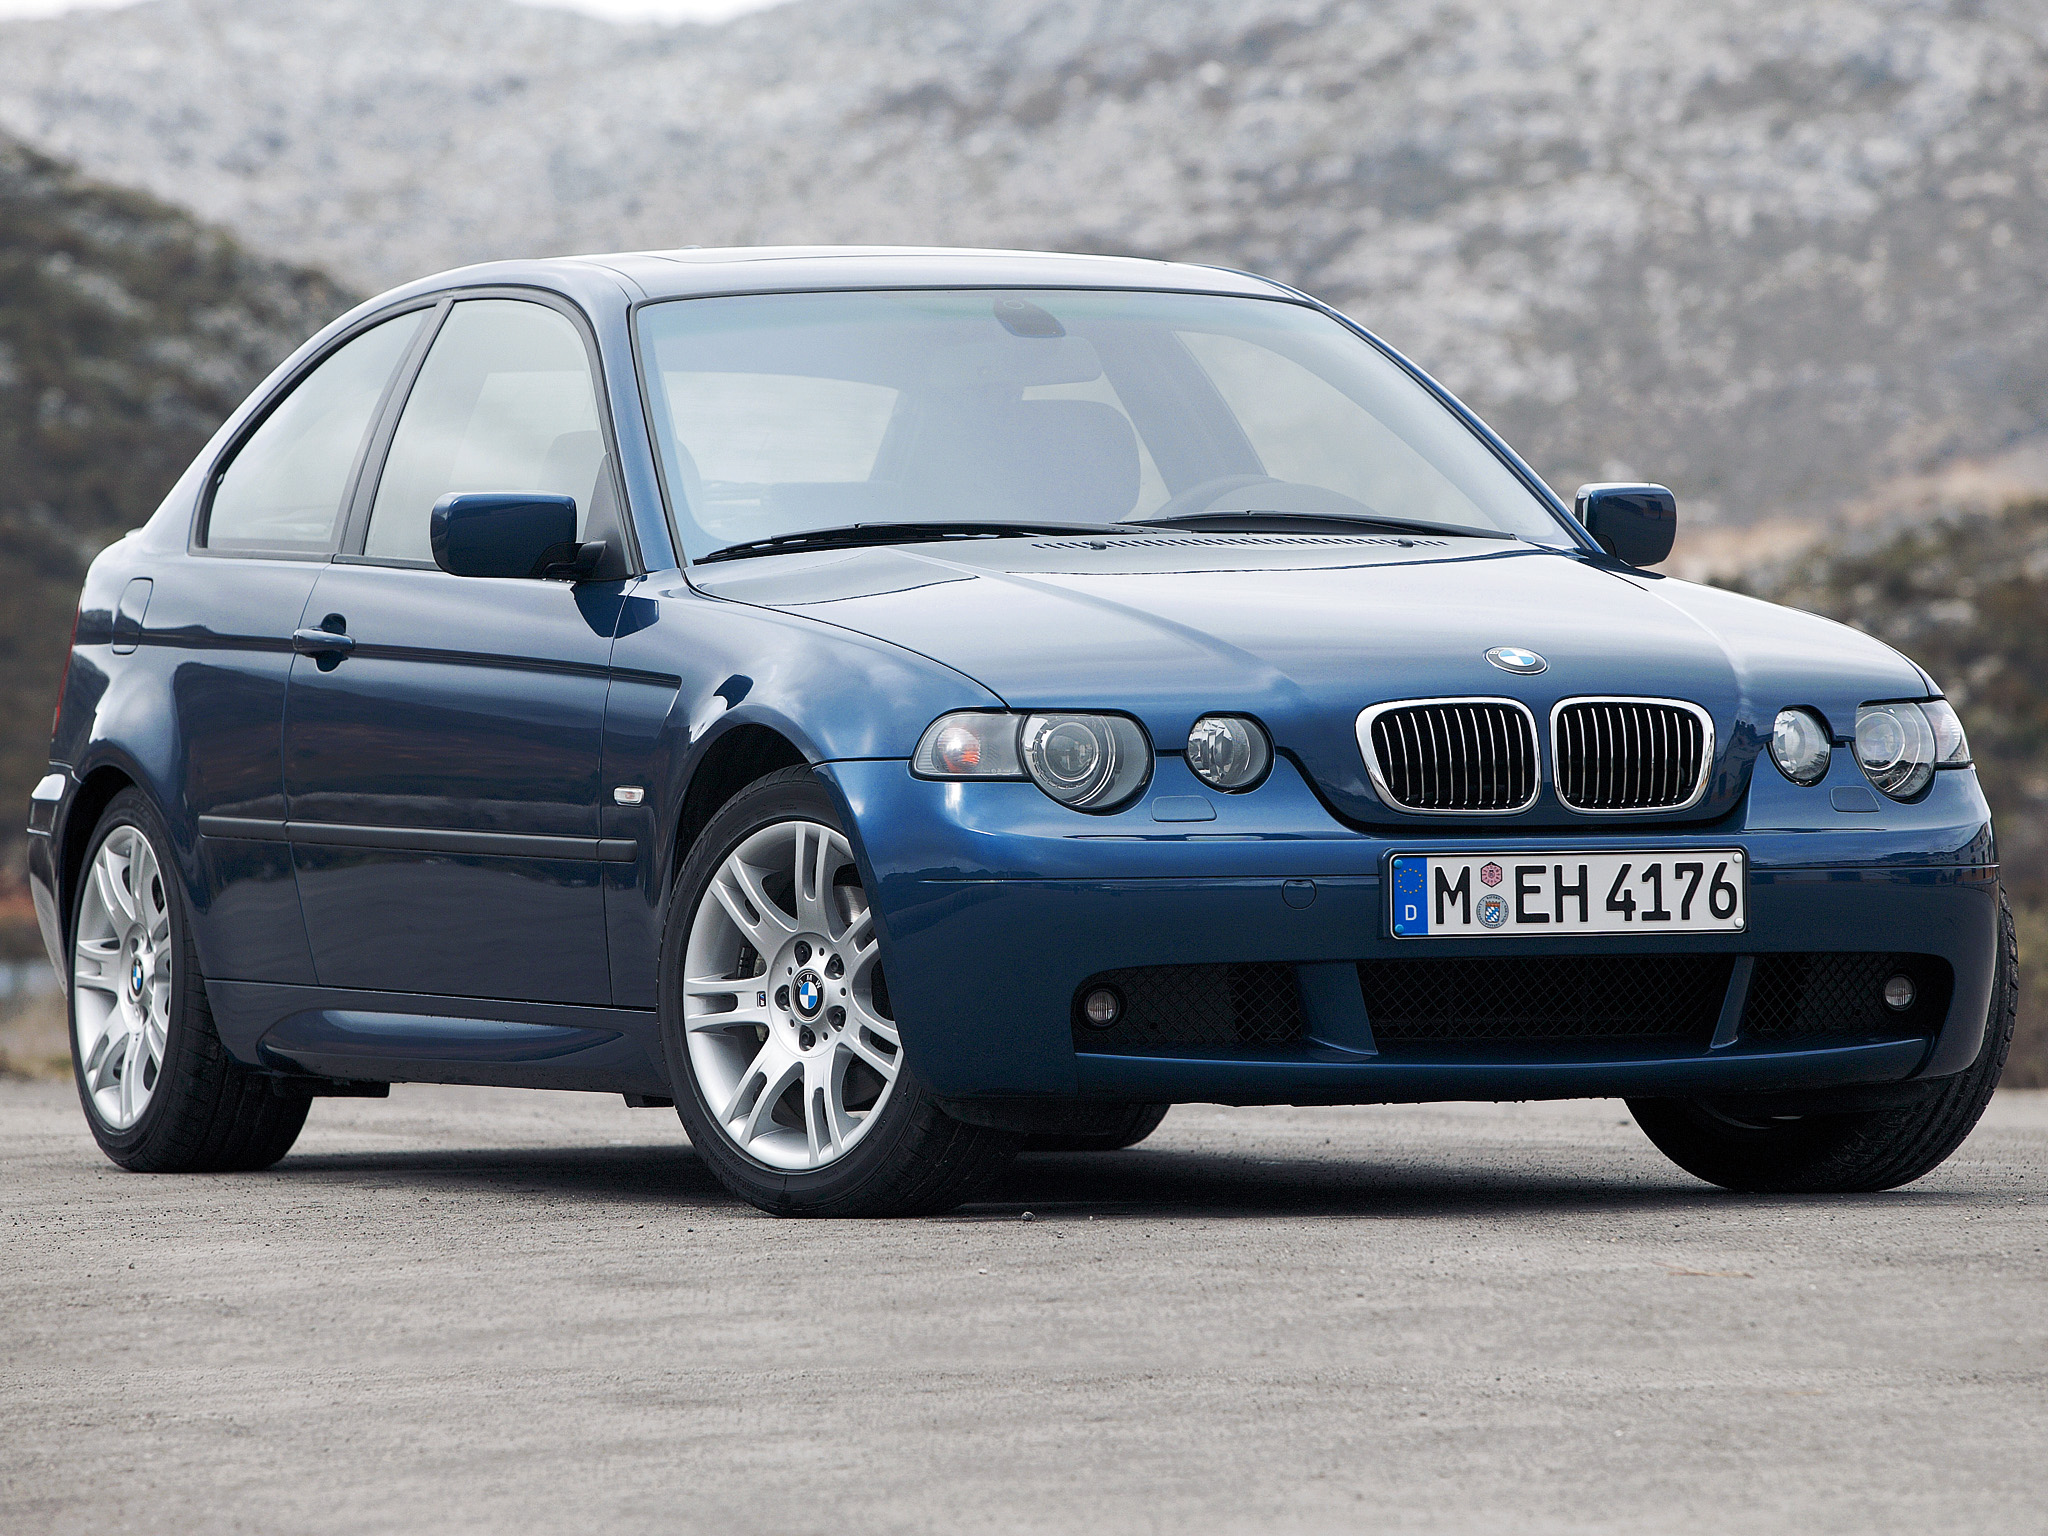 bmw 3 series compact (e46) 2003 images #12